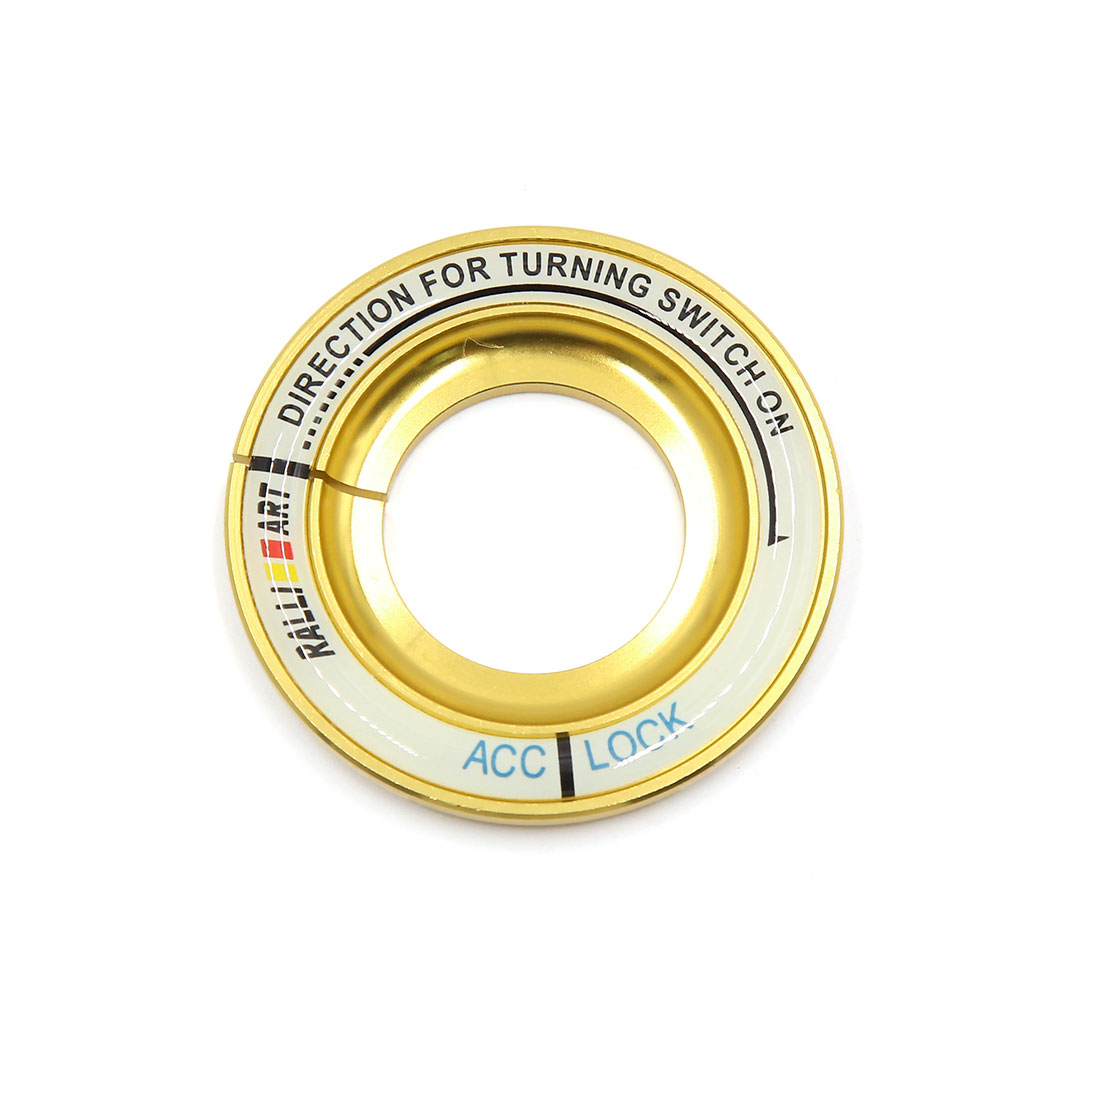 Gold Tone 52mm Dia Luminous Car Ignition Engine Start Stop Switch Button Decorative Ring for Kia KX5